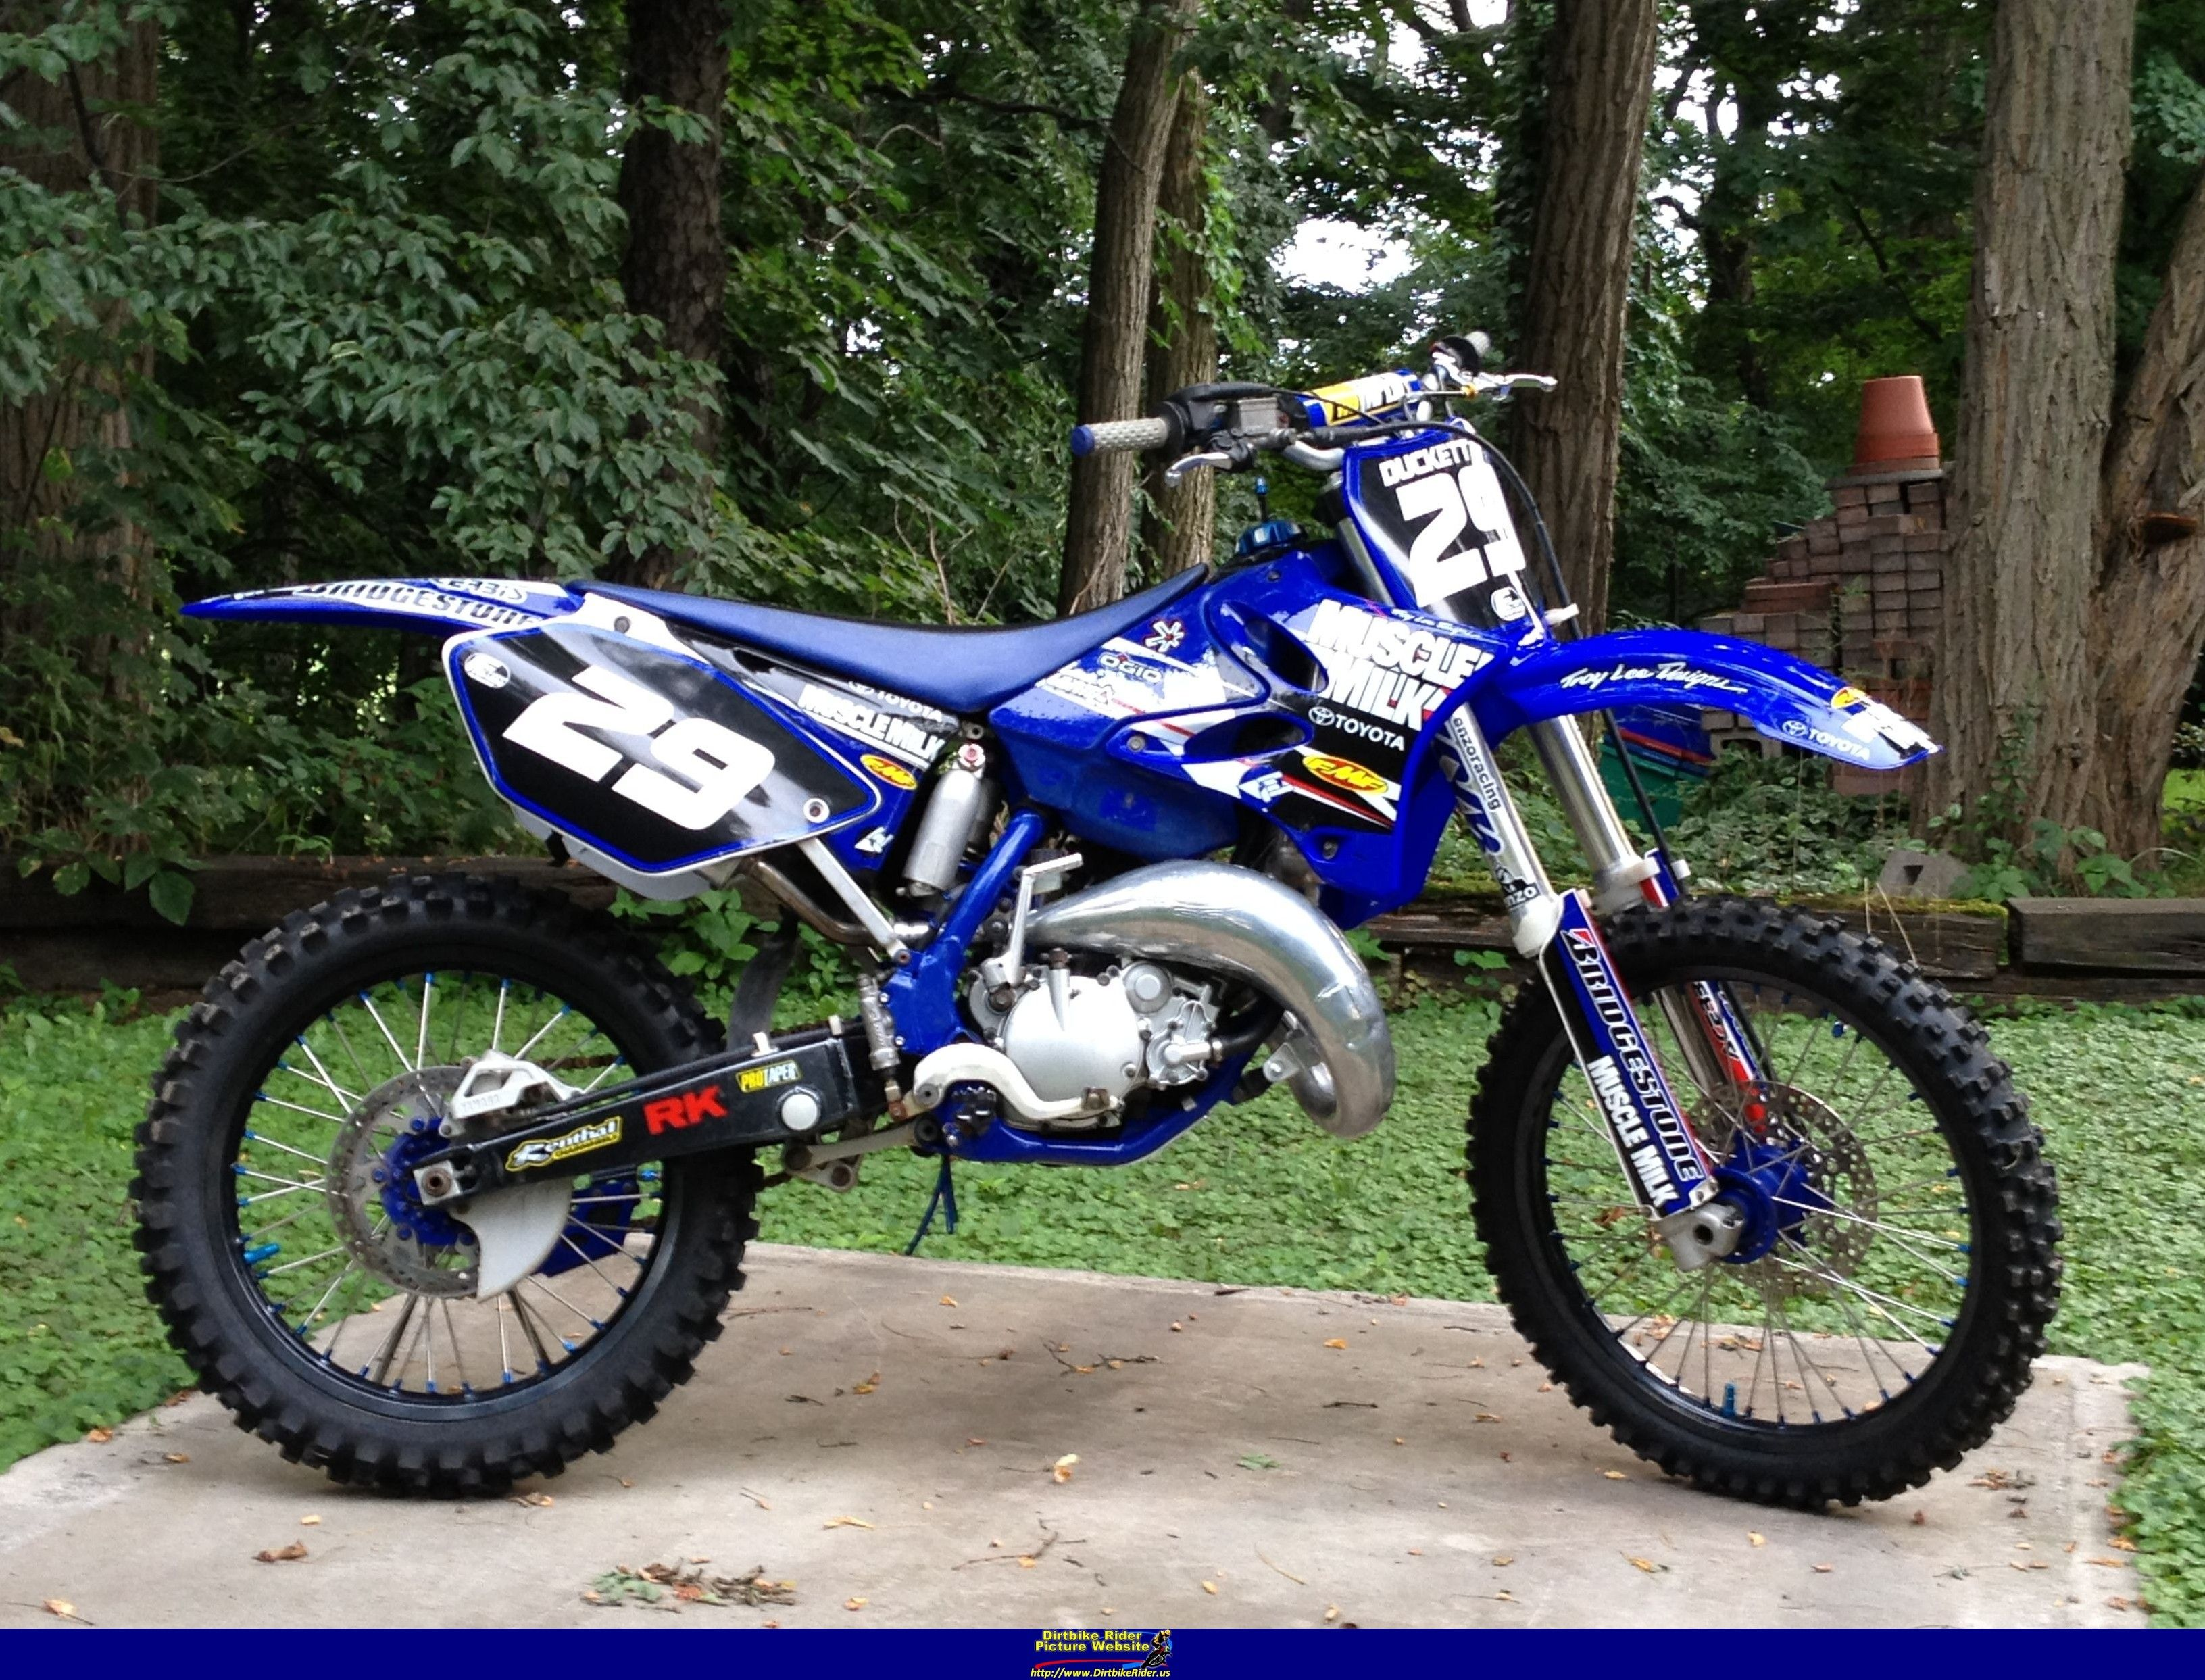 2002 Yamaha Yz125 Yamaha Motocross Dirt Bike Gear Dirtbikes